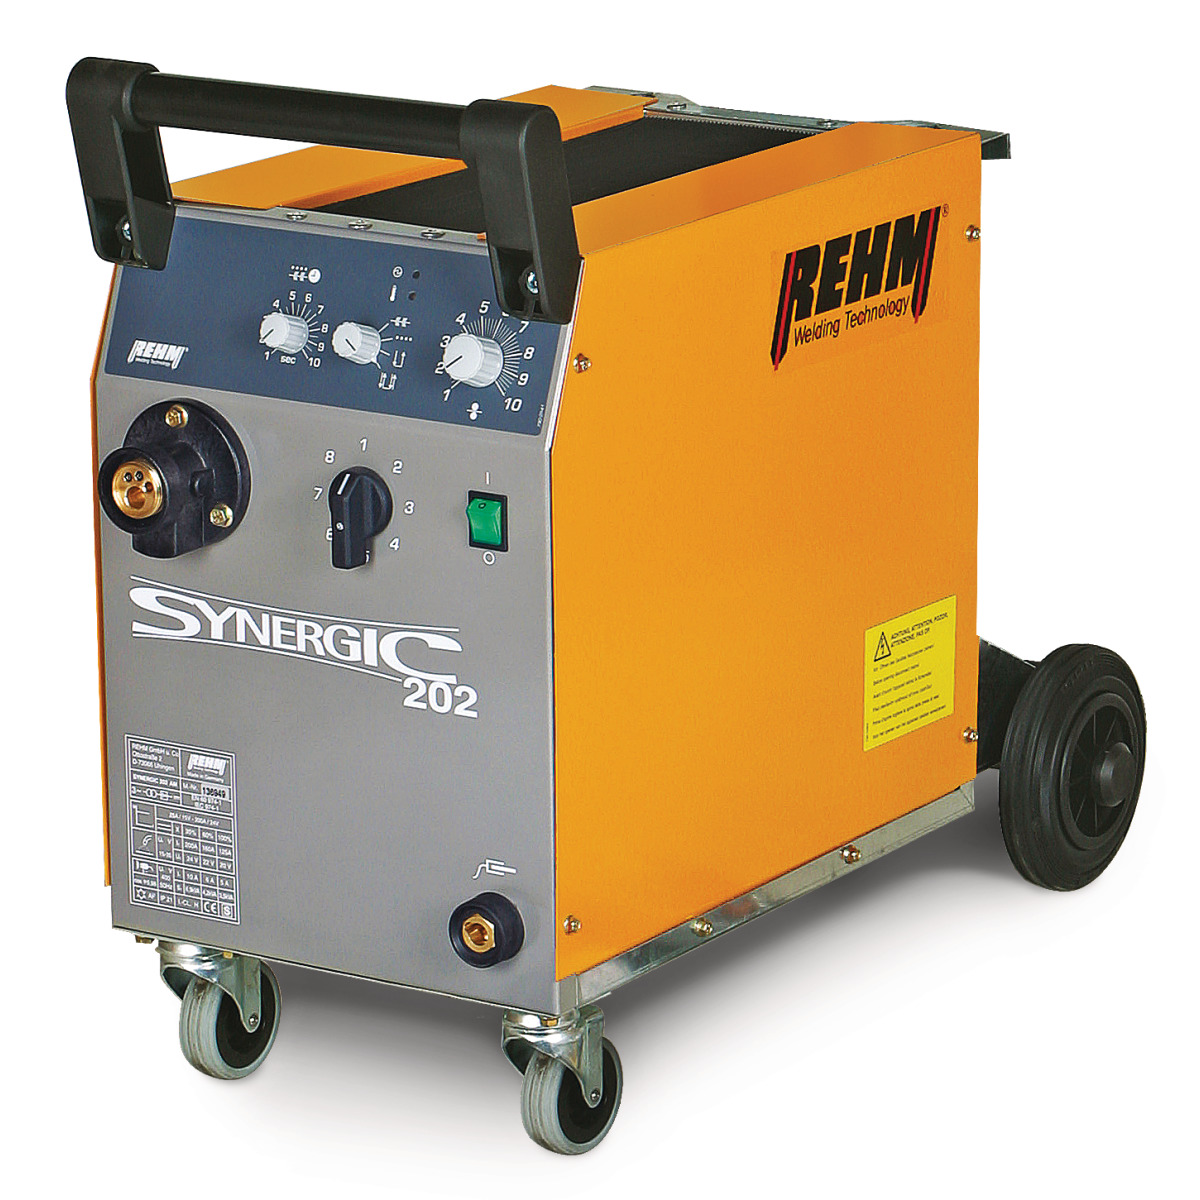 SYNERGIC 202 AM